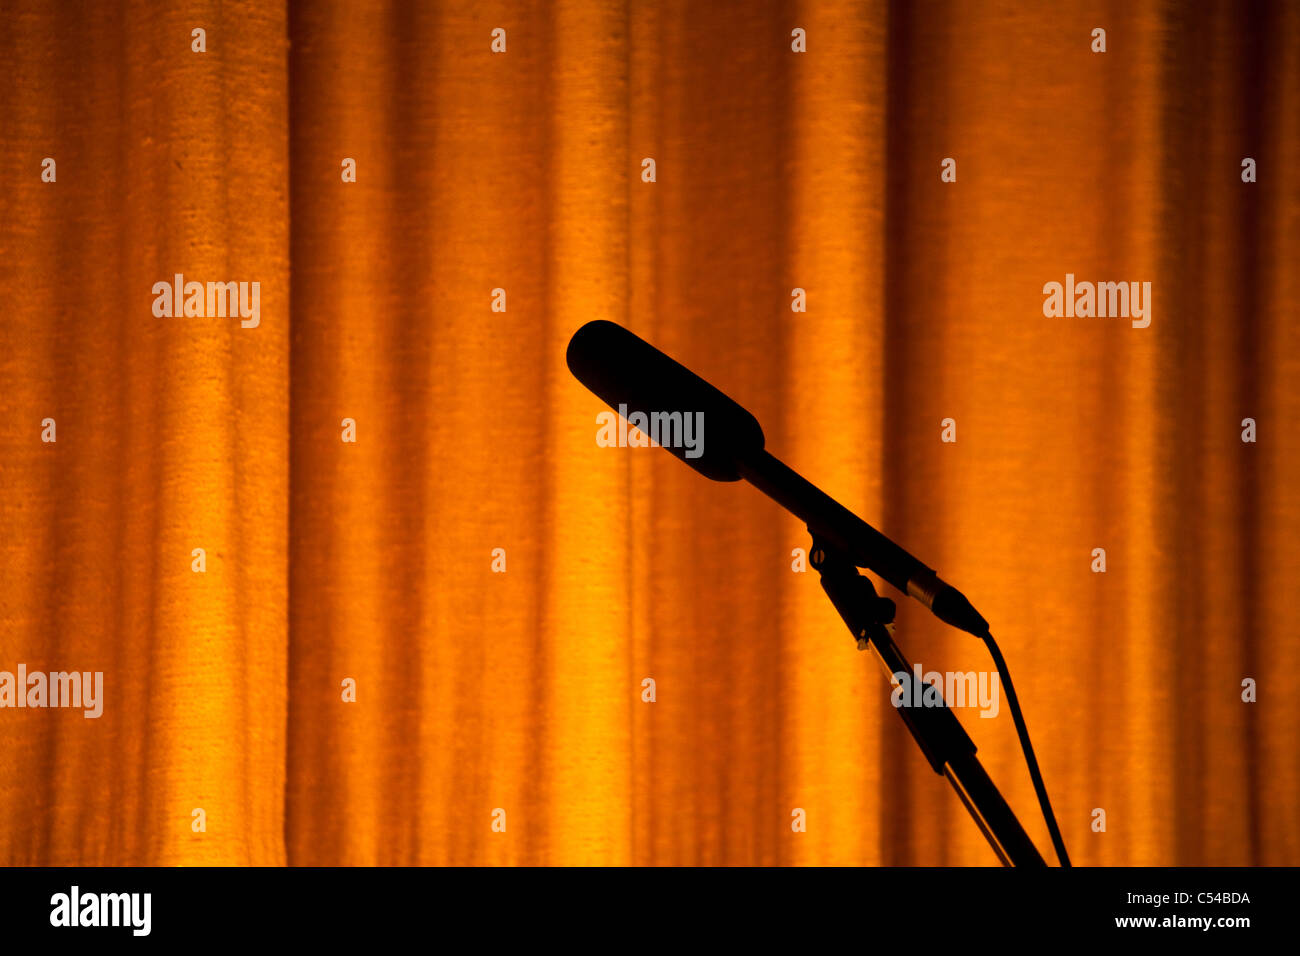 Yellow Stage Curtain and Microphone for background - Stock Image